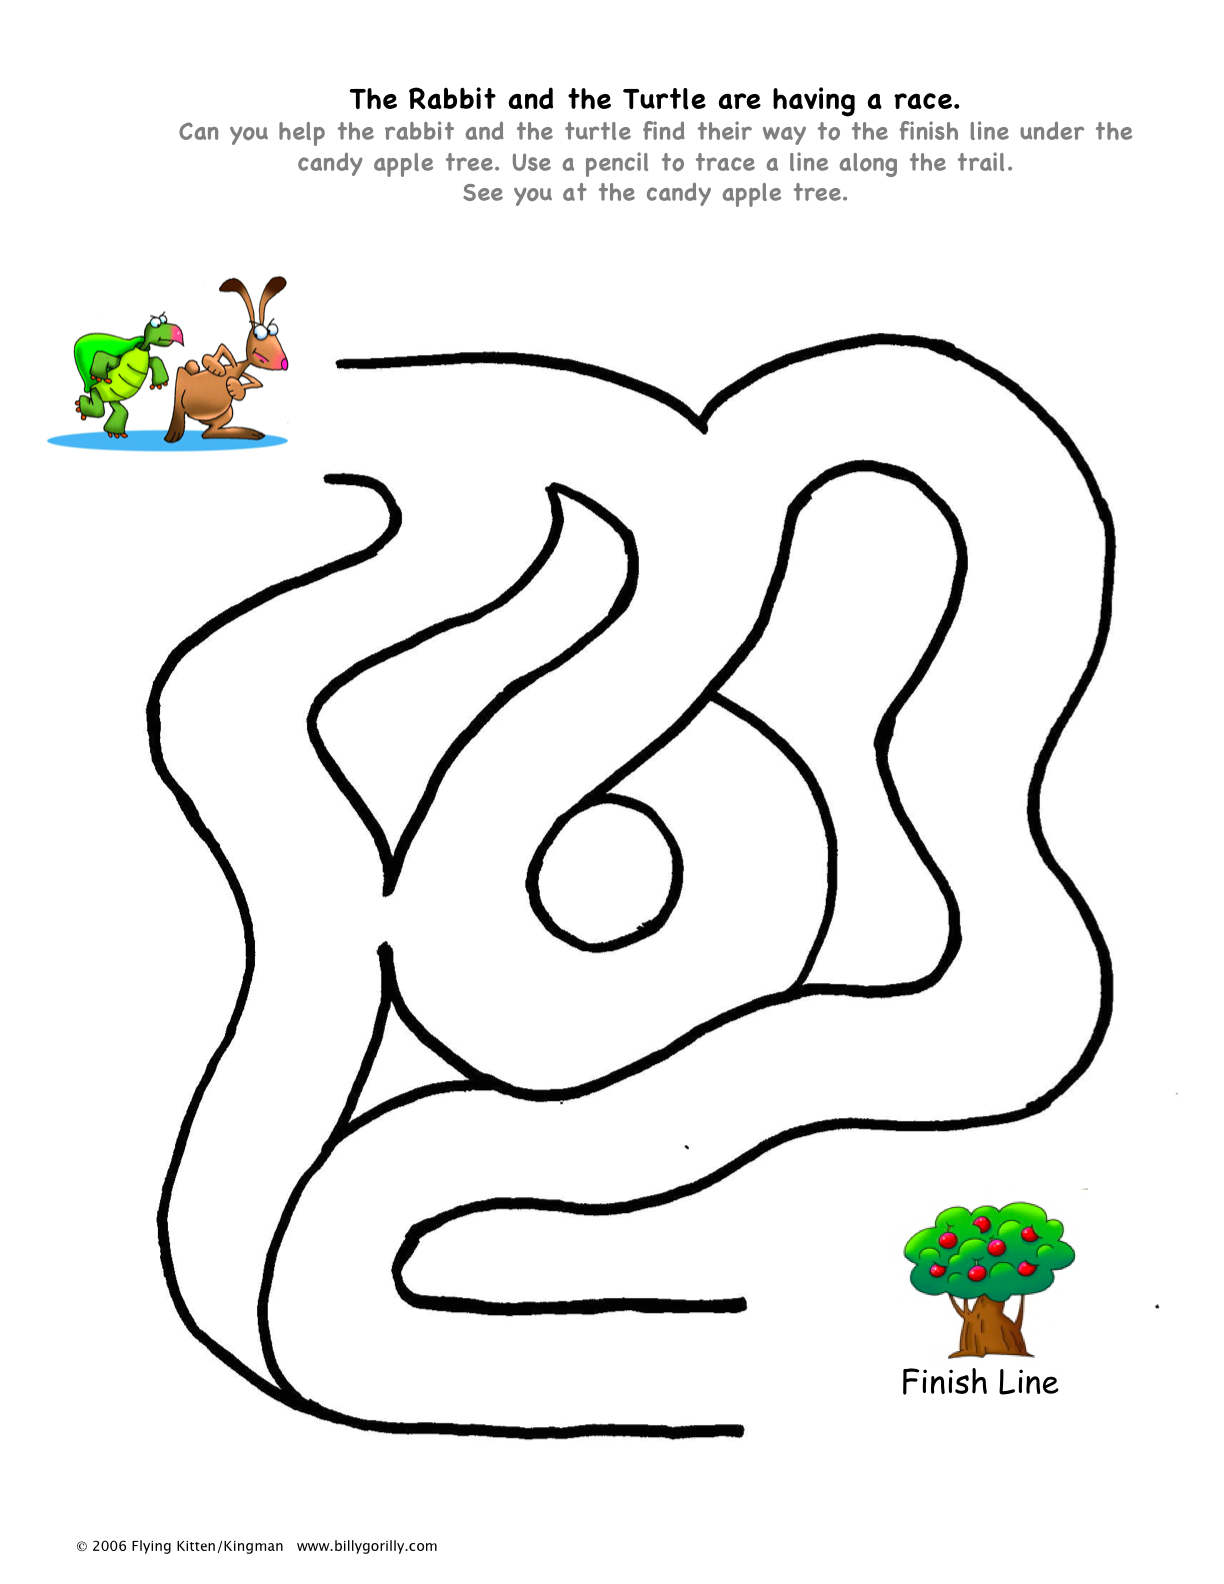 Click to download Easy Maze